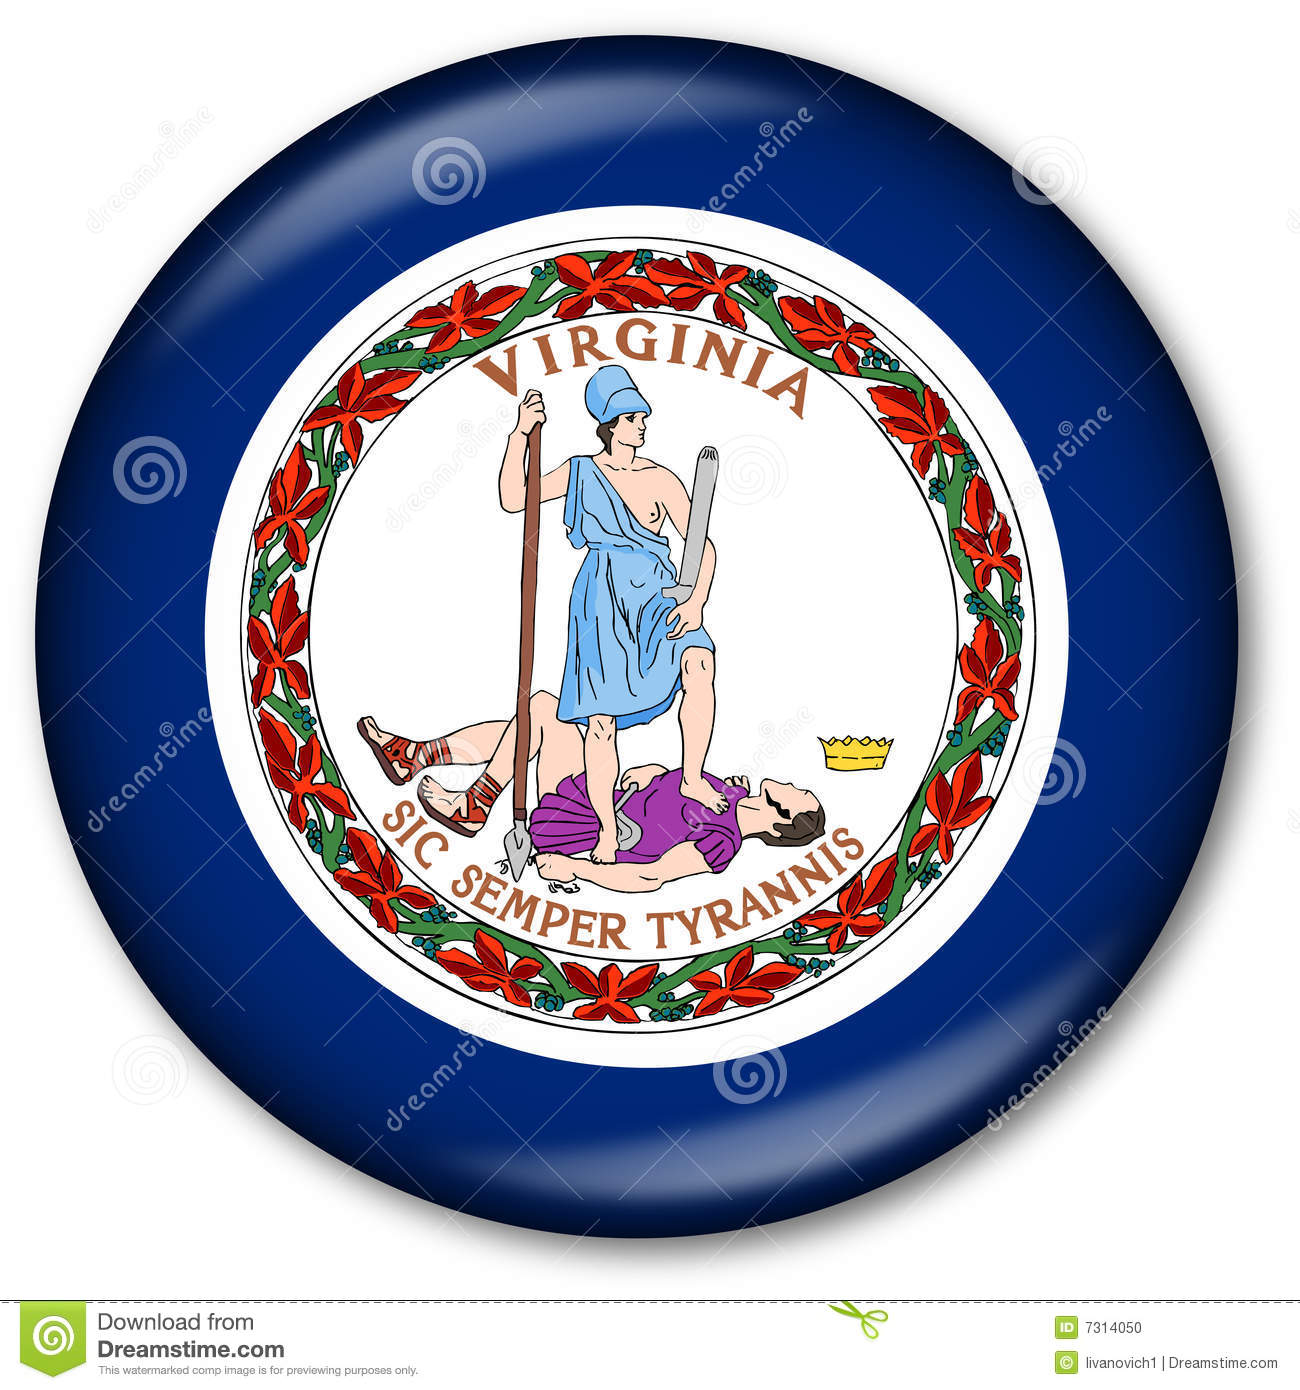 Virginia State Flag Button Stock Illustration Illustration Of Great